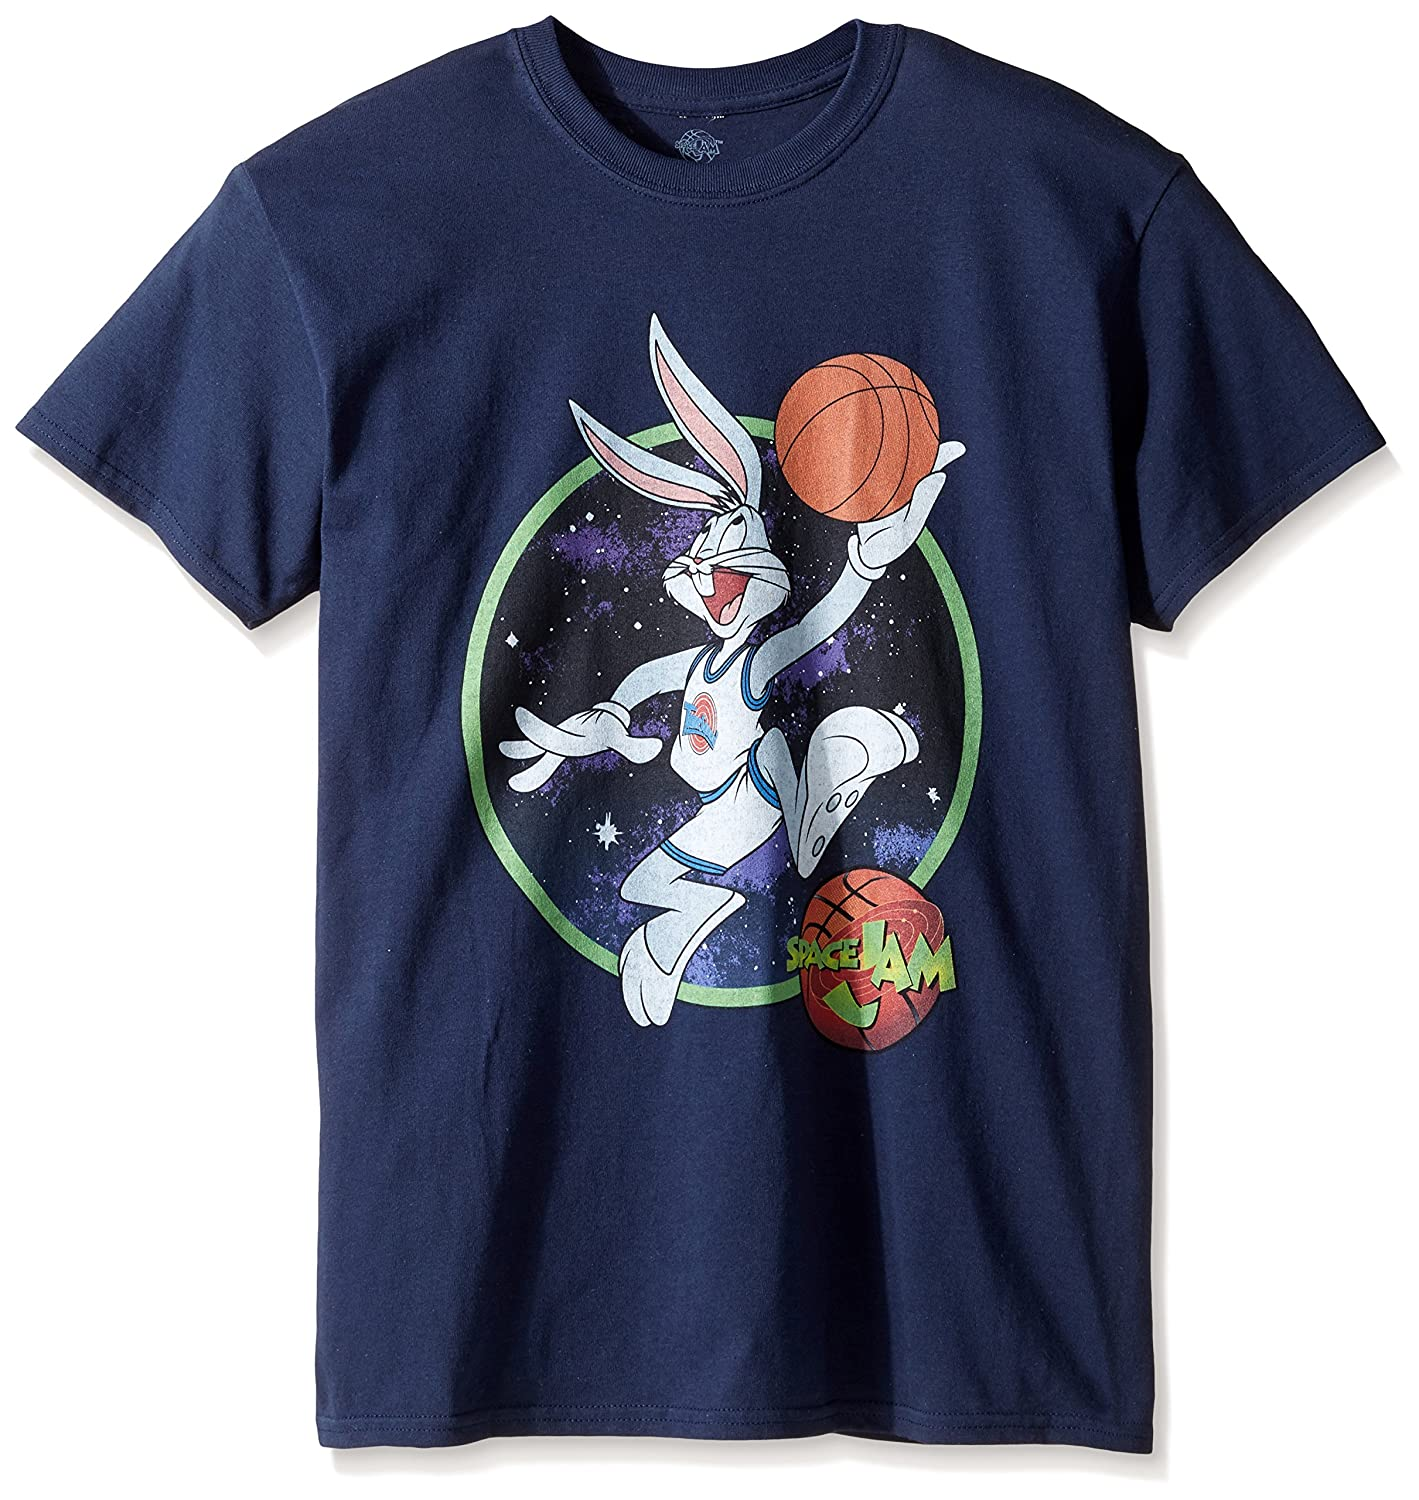 9417aaad766f10 Amazon.com  Warner Bros Warner Brothers Men s Bugs Dunk Space Jam T-Shirt   Clothing